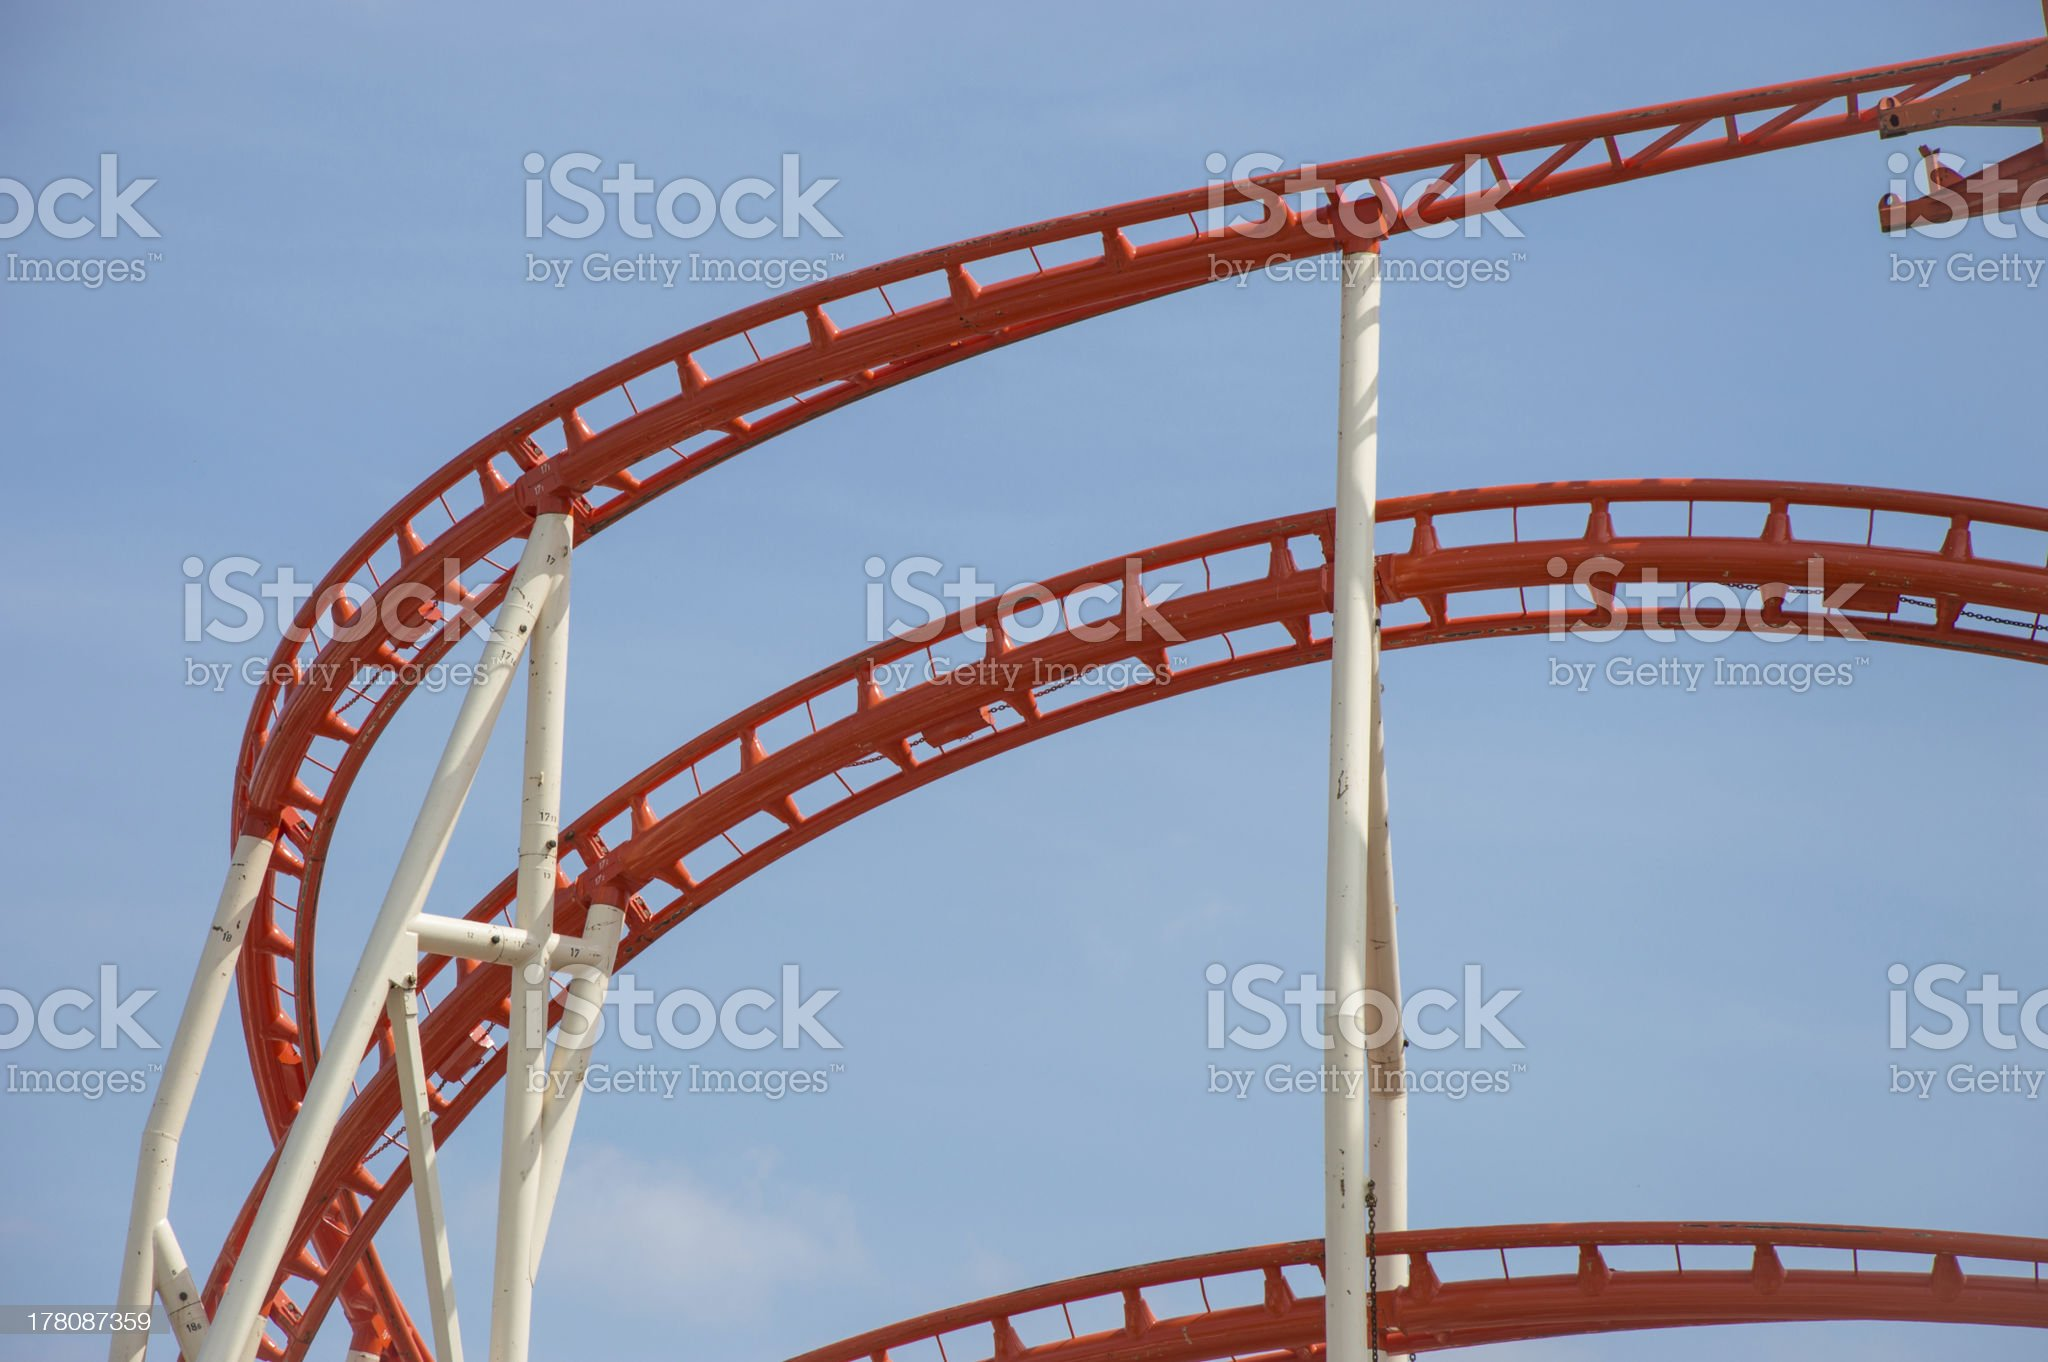 Rollercoaster rails royalty-free stock photo